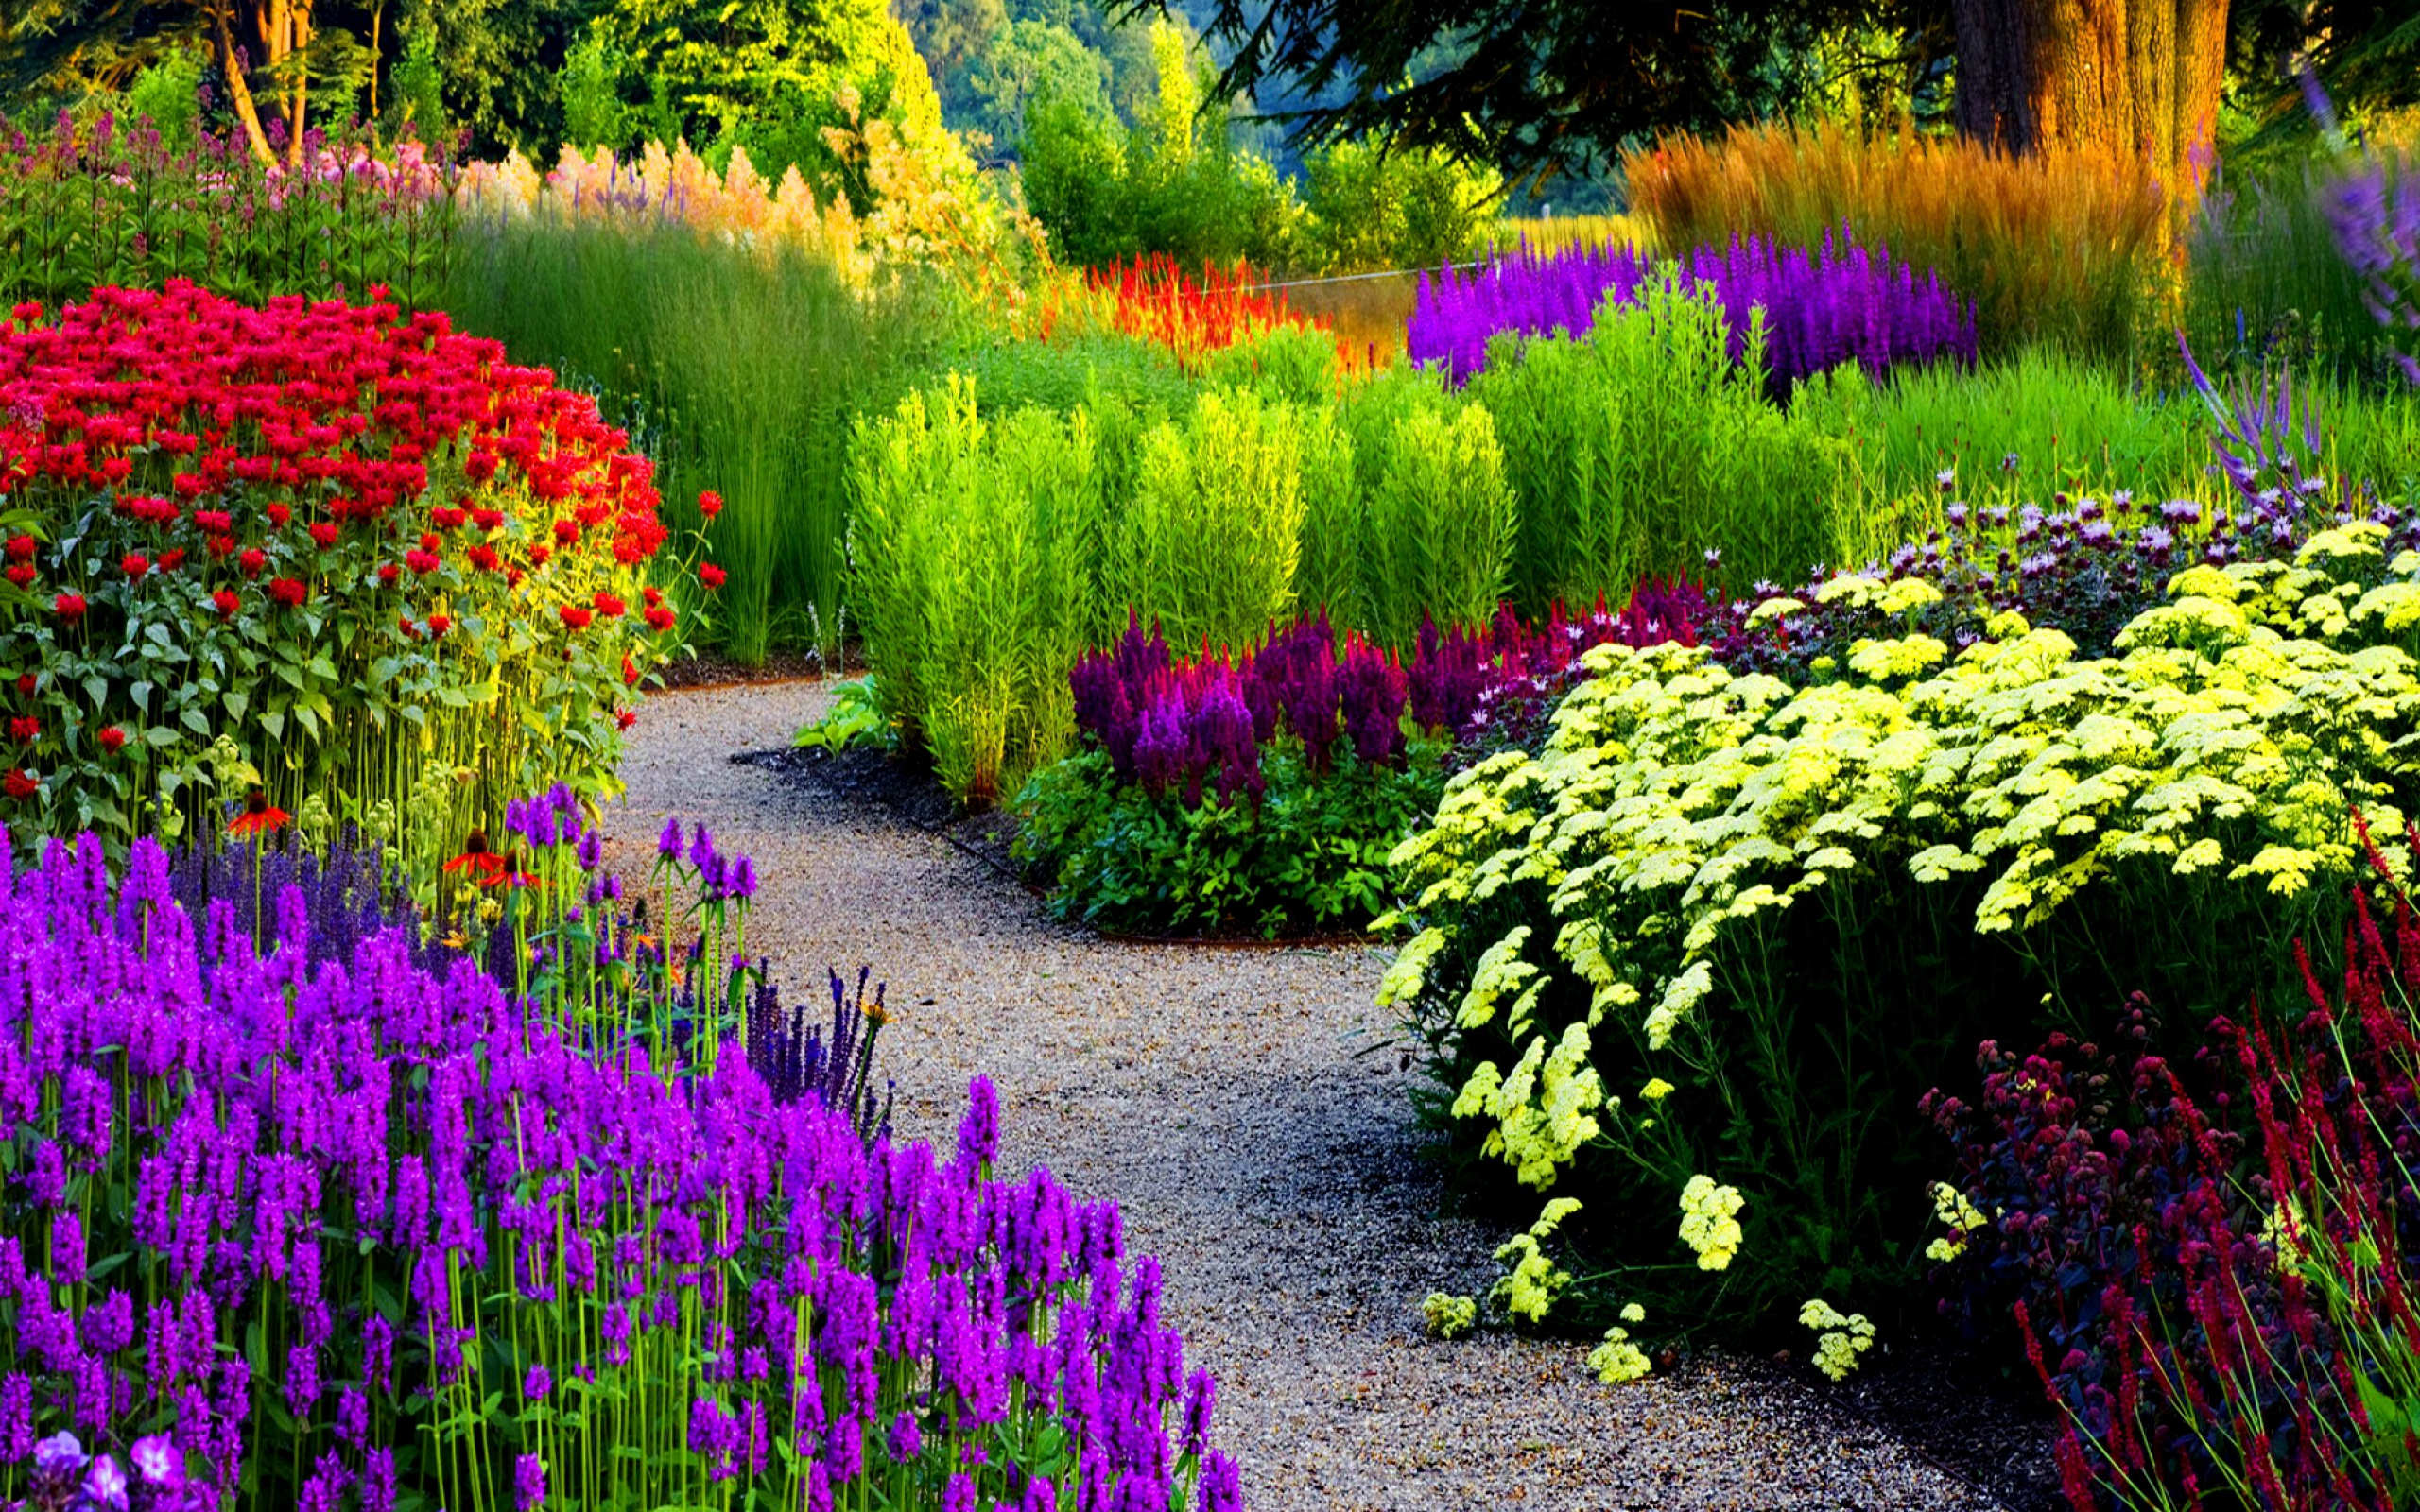 Flower Garden Wallpaper Background garden wallpaper background for computer 17 inspiration